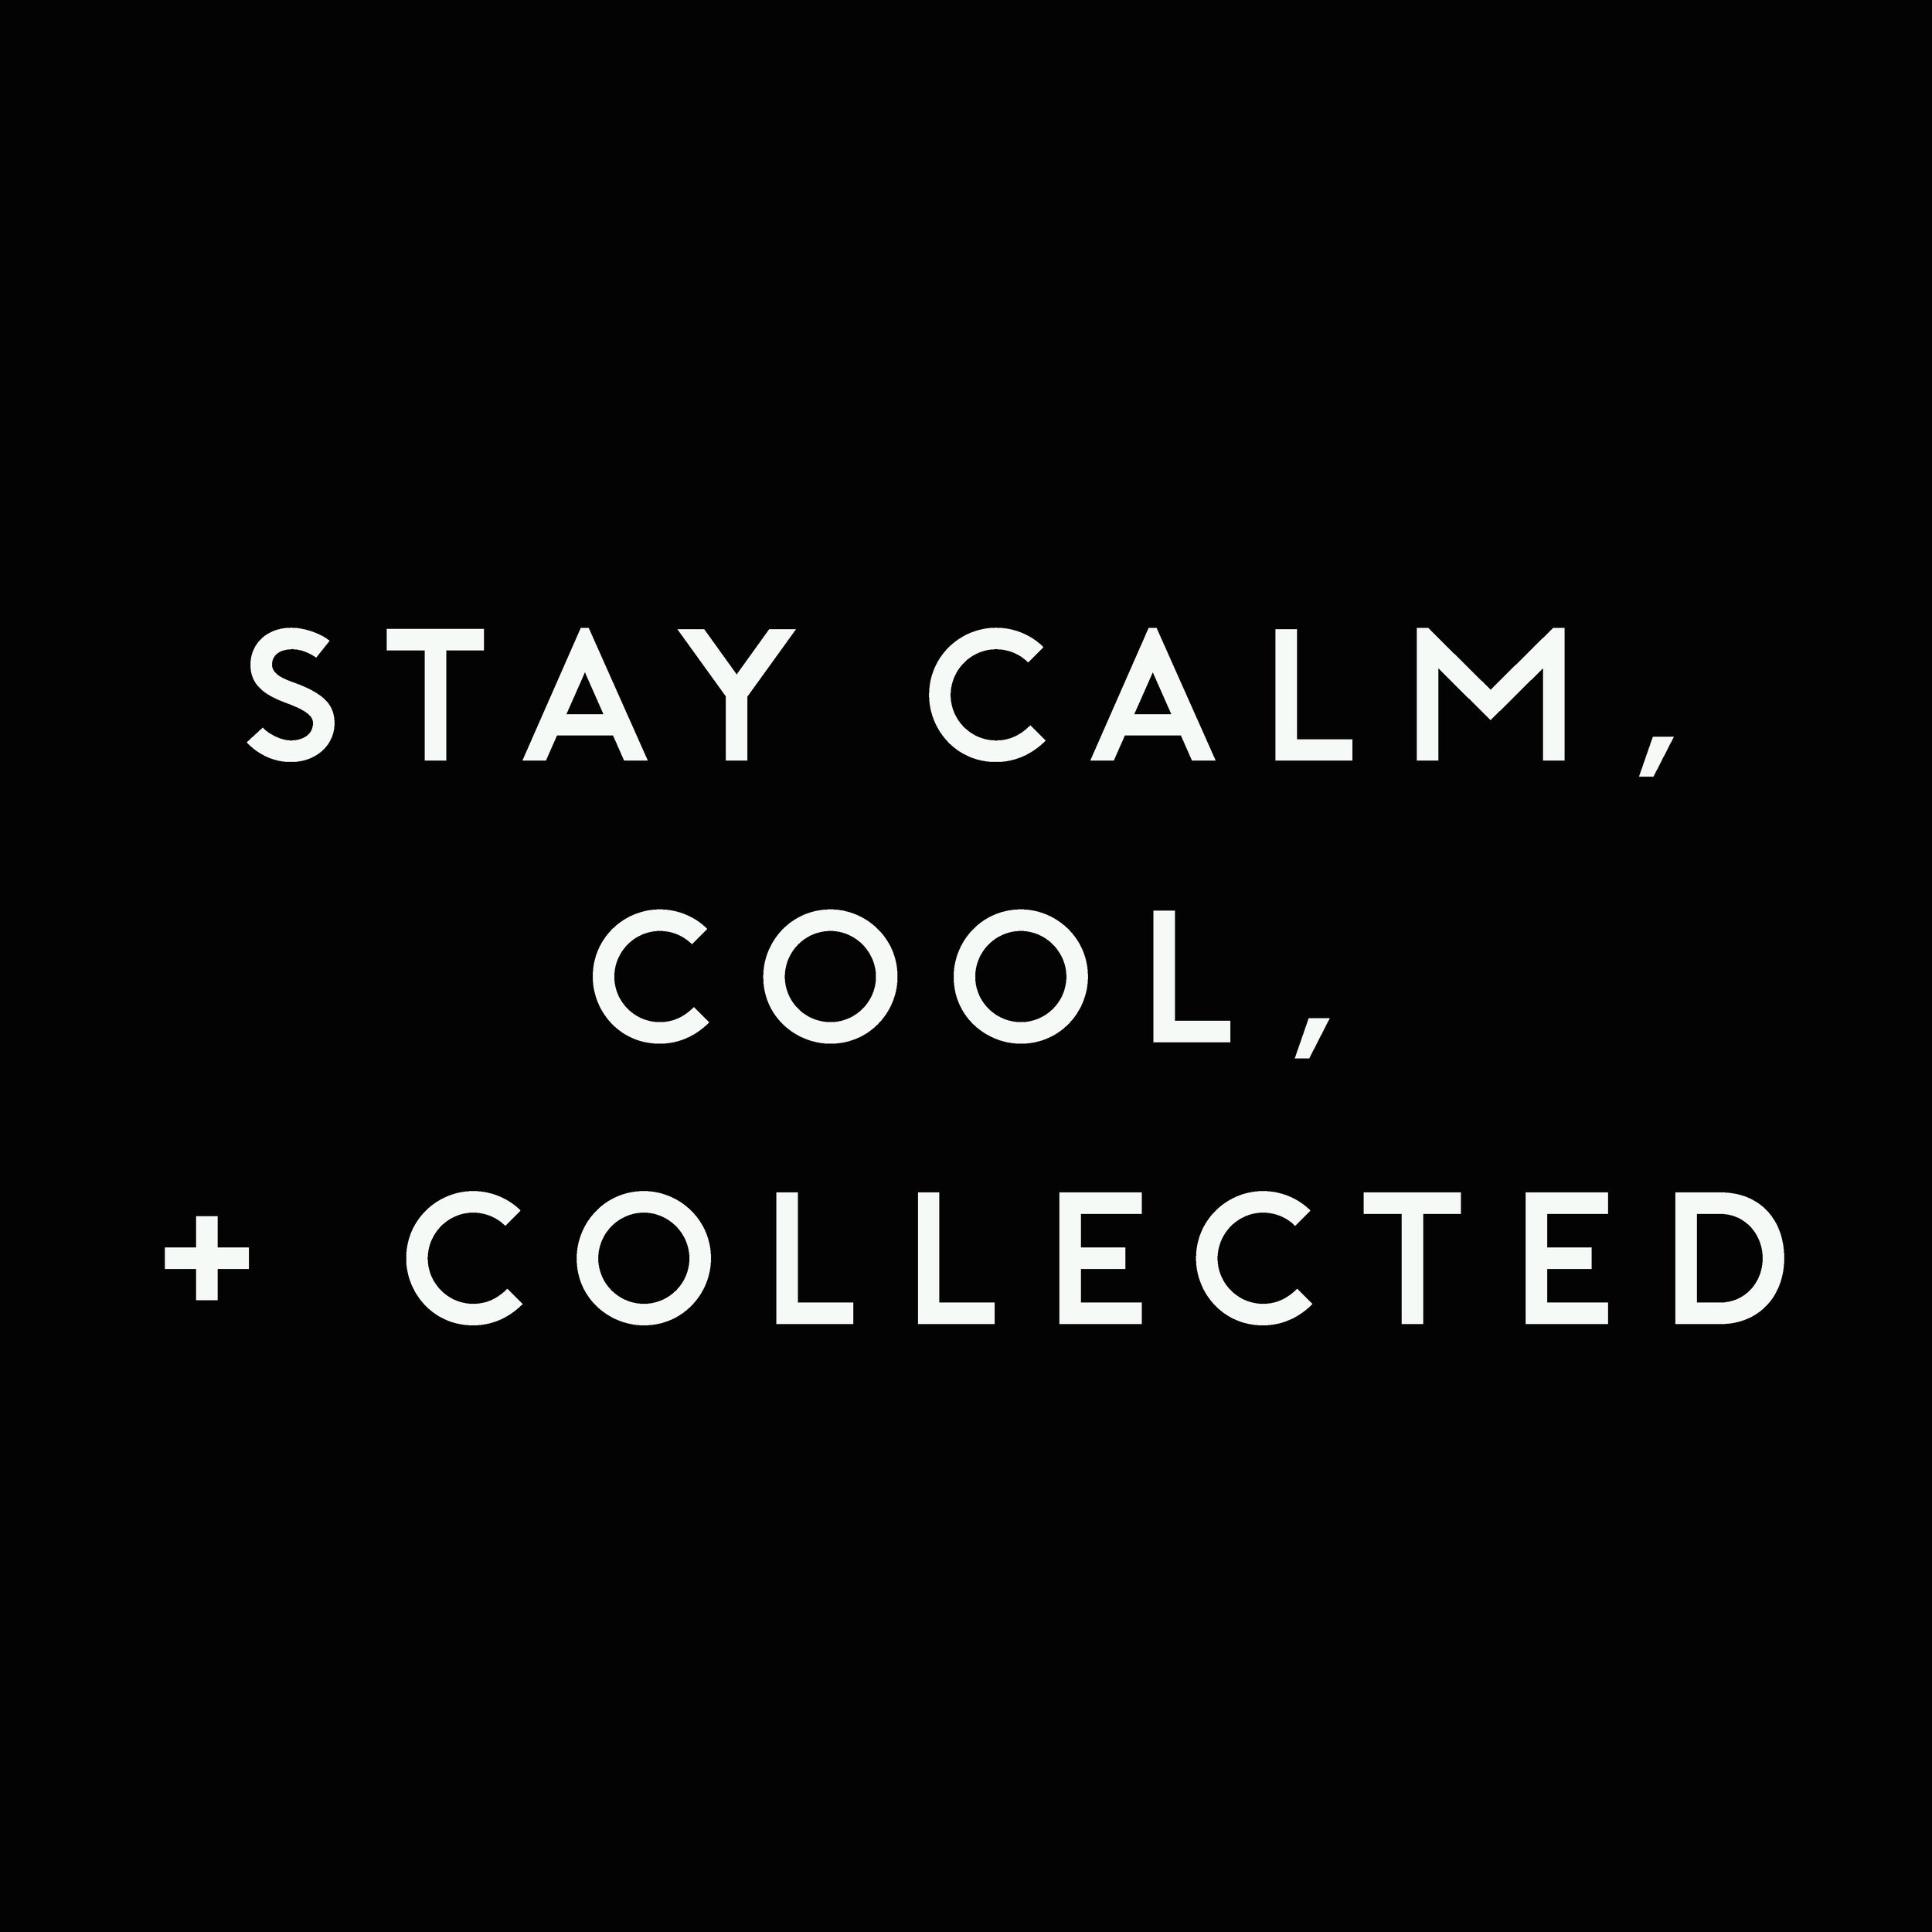 STAY CALM COOL AND COLLECTED.jpg